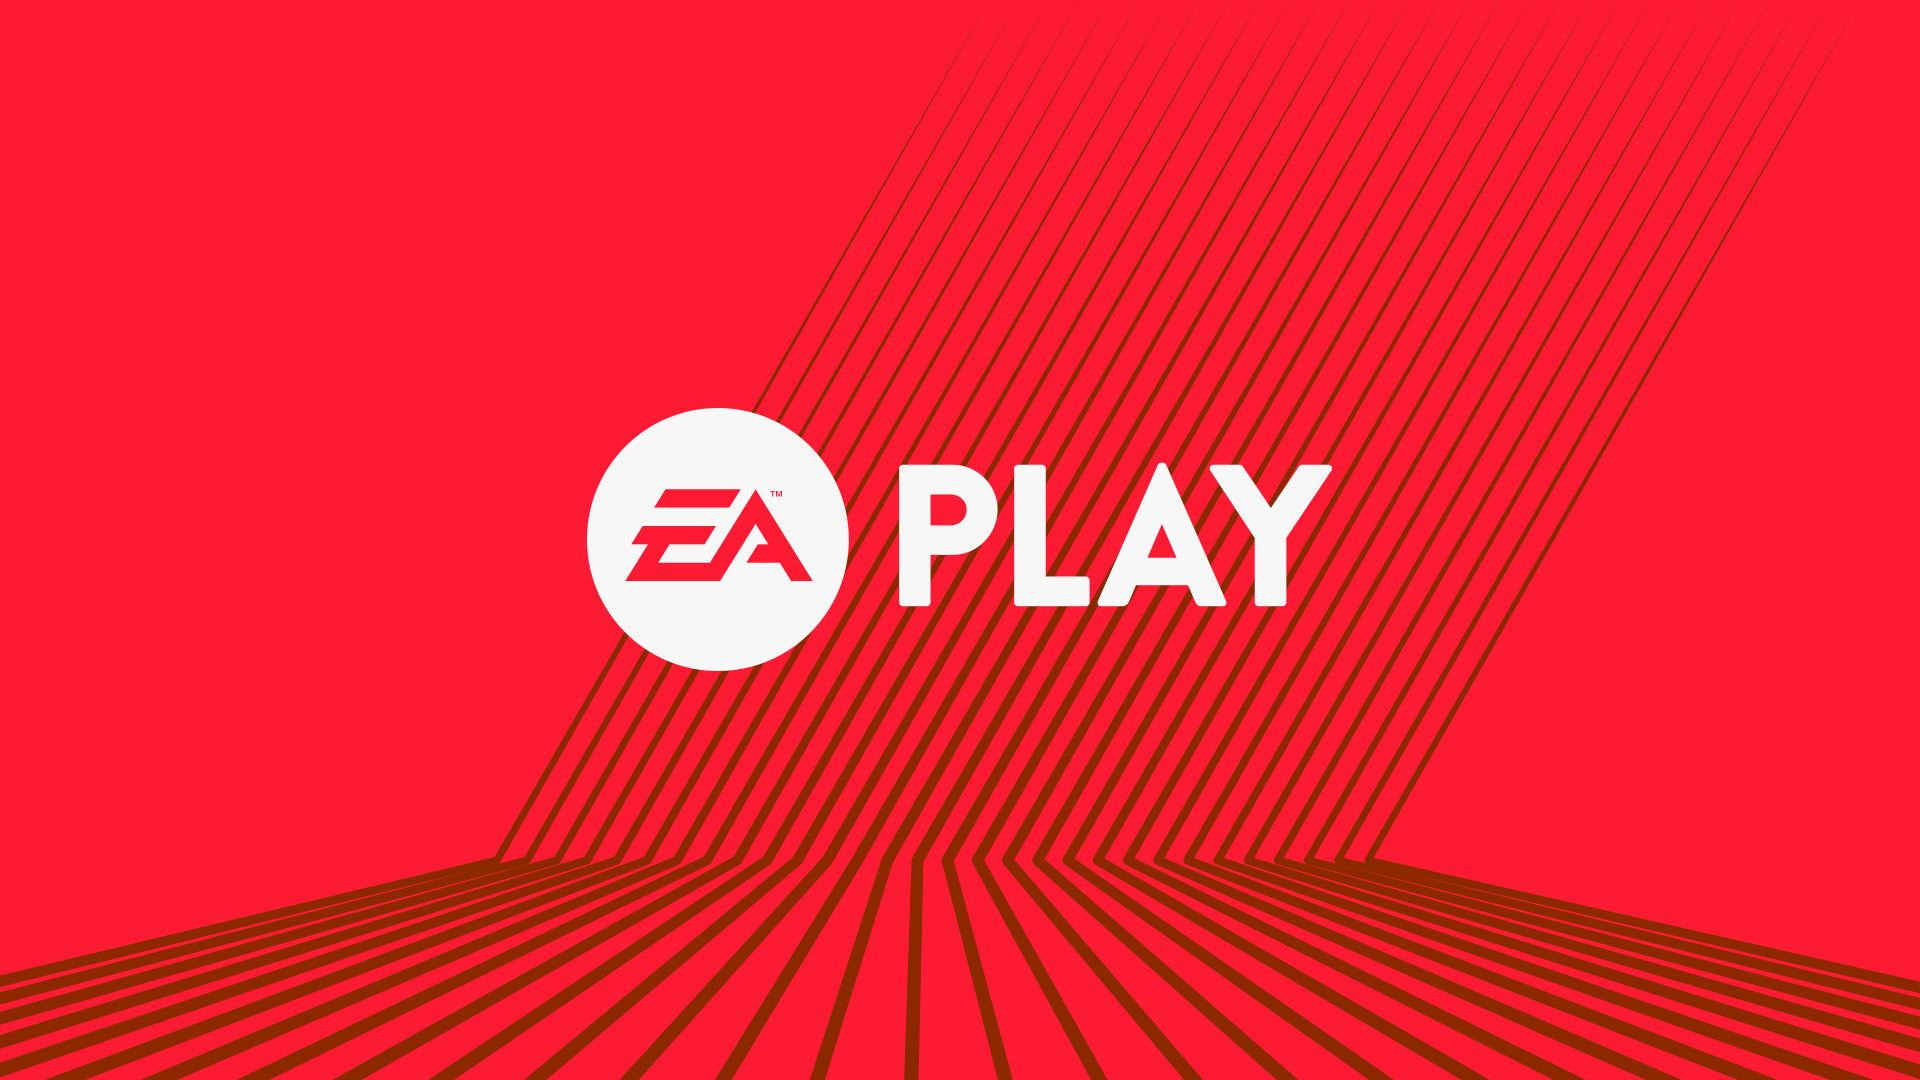 EA Play: Try the subscription service for less than one euro